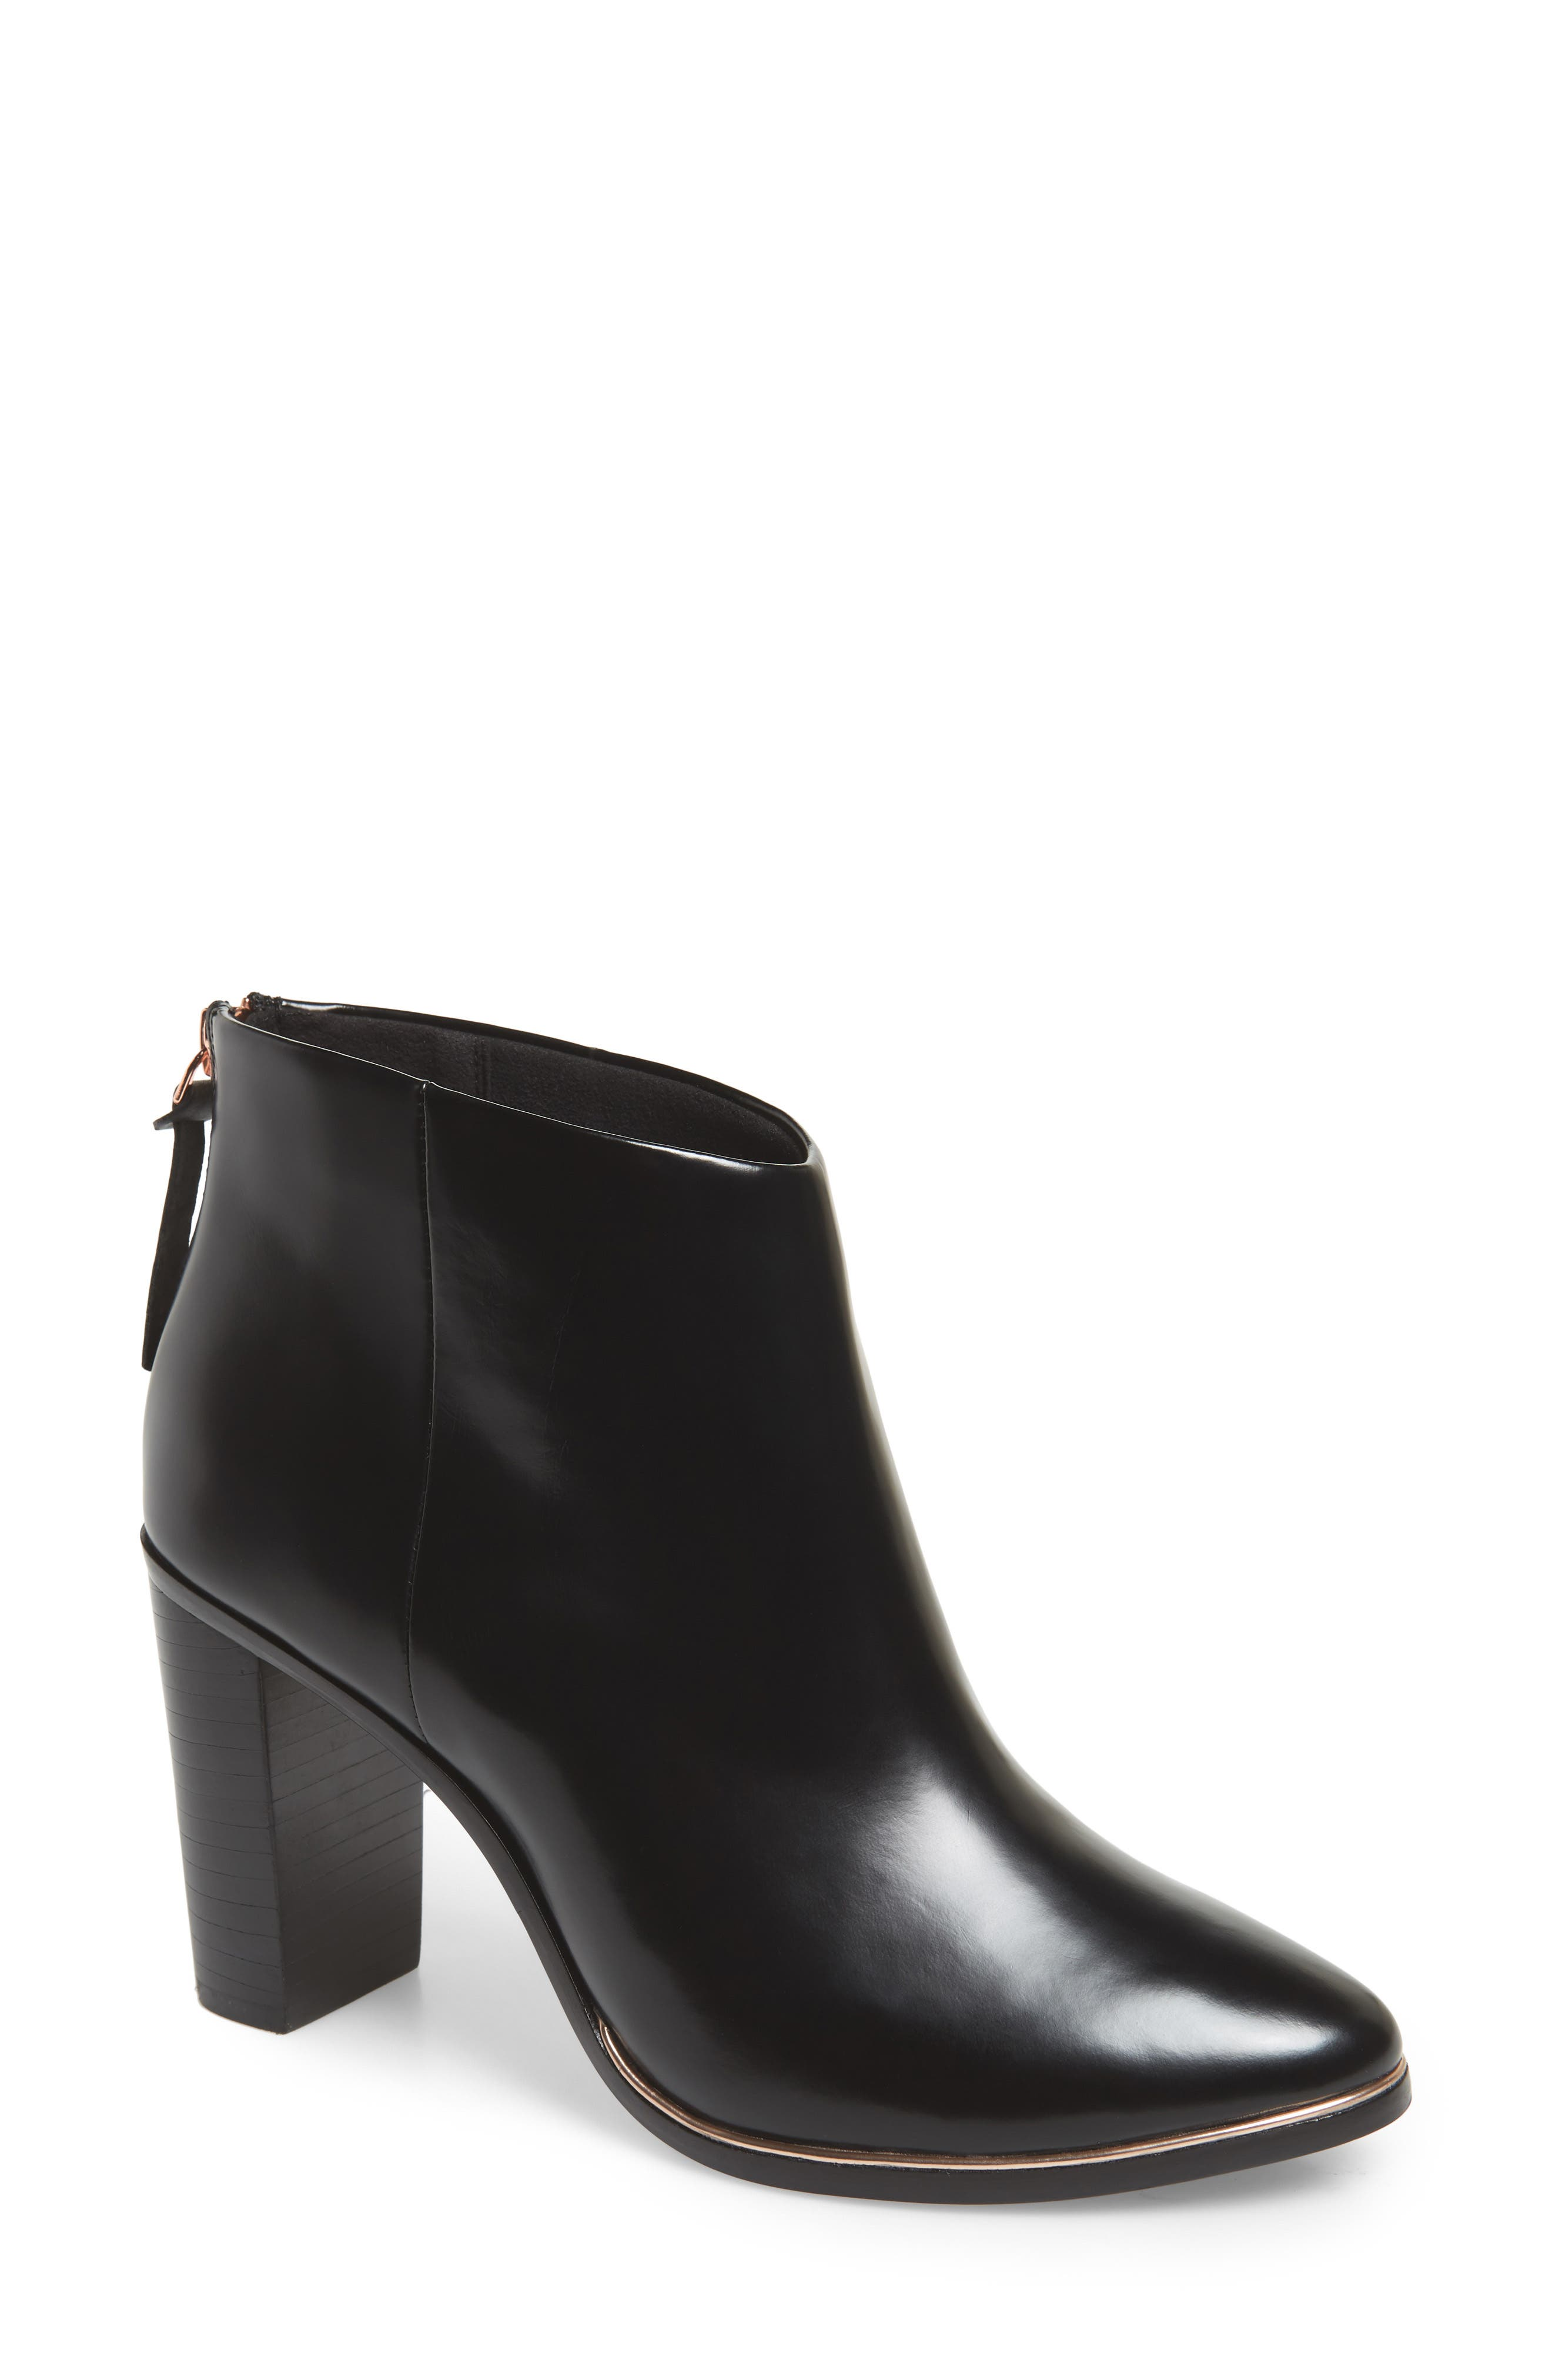 Vaully Bootie,                             Main thumbnail 1, color,                             BLACK LEATHER